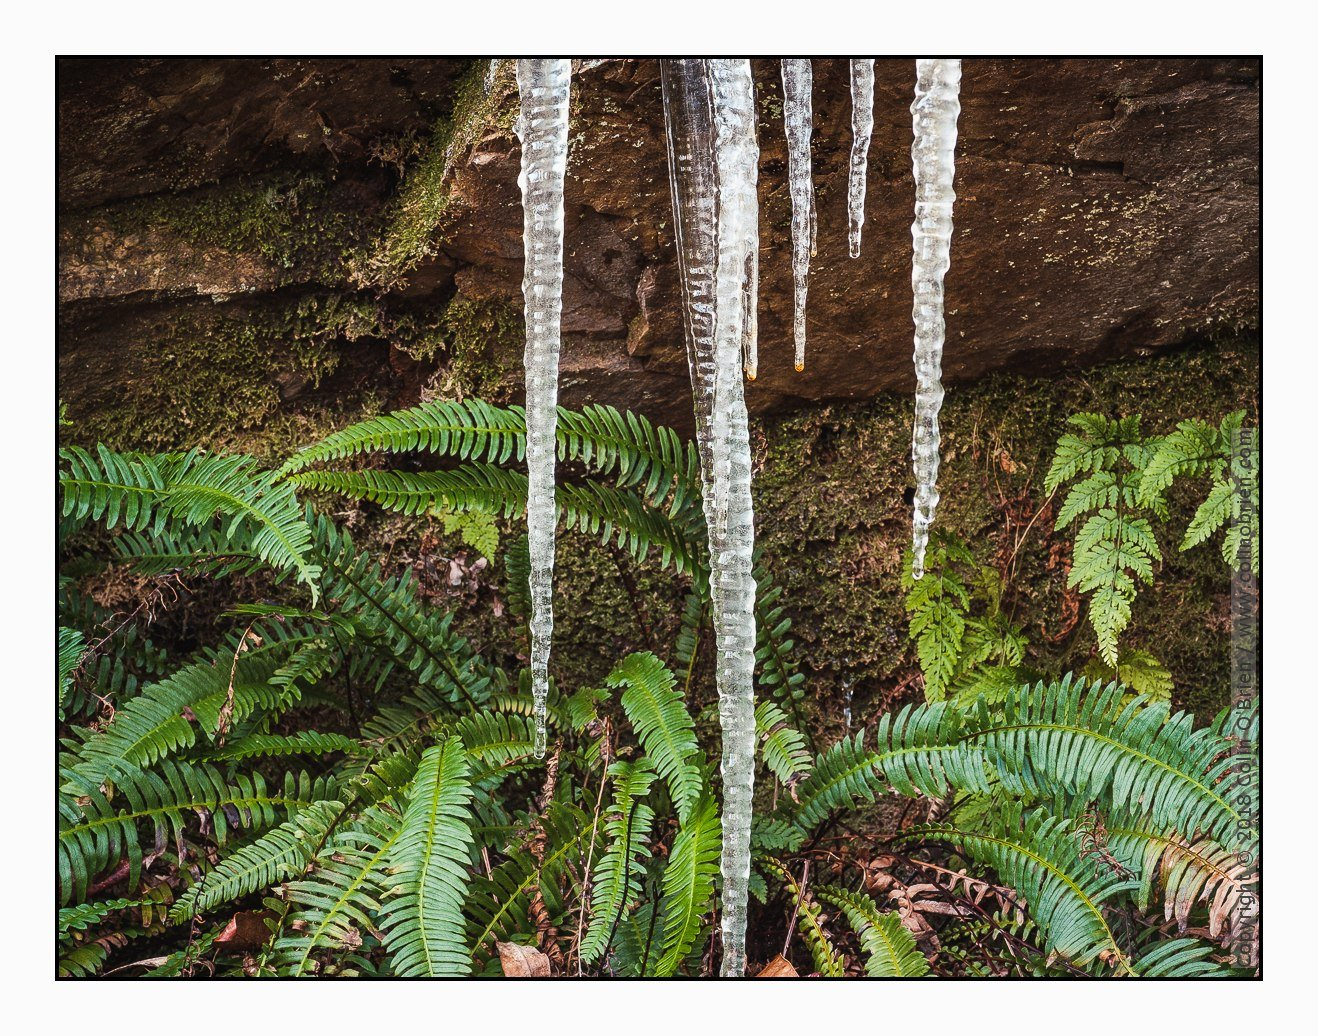 Fern icicles